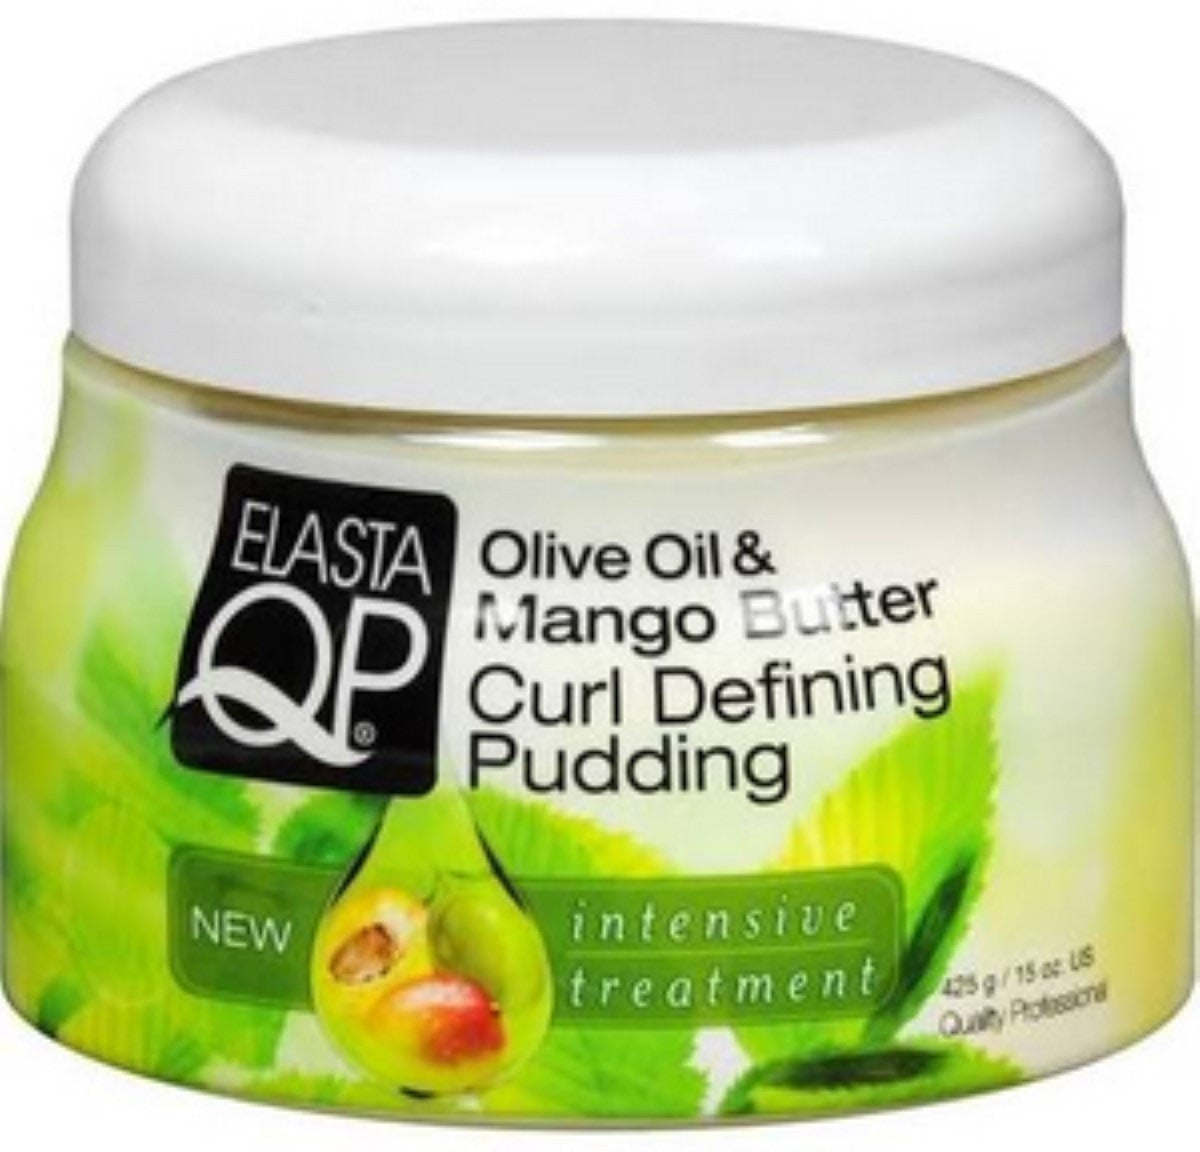 Elasta QP Olive Oil & Mango Butter Curl Defining Pudding (15 Oz) - Beauty Empire